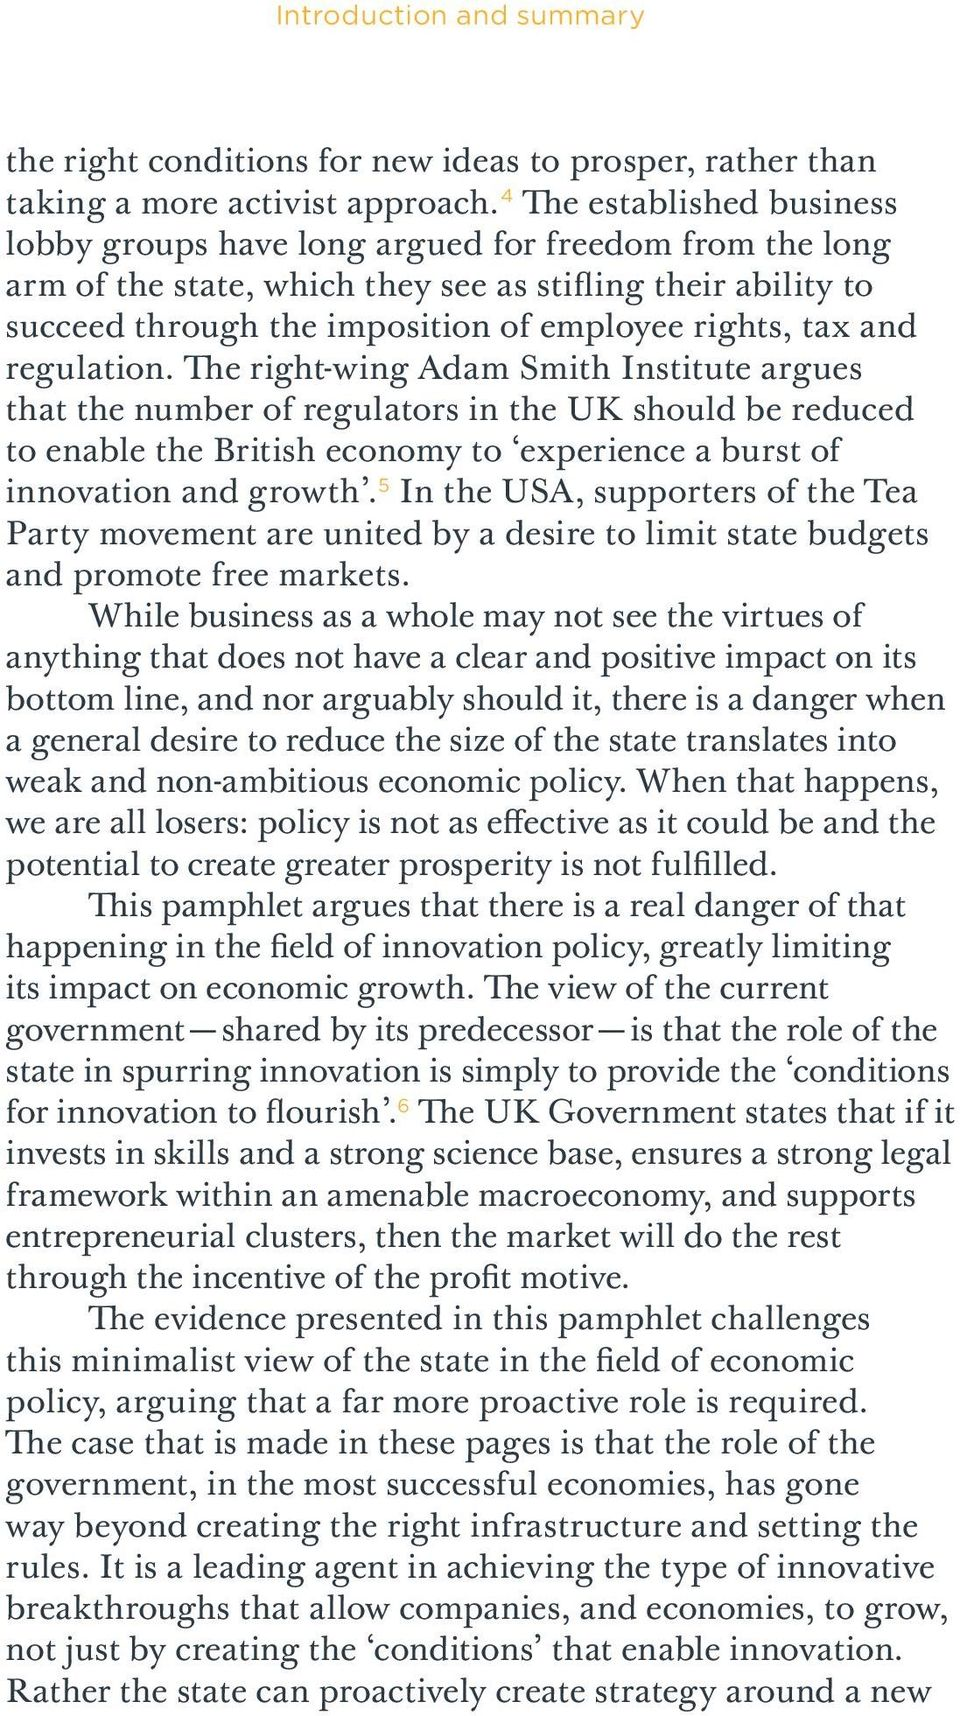 and regulation. The right-wing Adam Smith Institute argues that the number of regulators in the UK should be reduced to enable the British economy to experience a burst of innovation and growth.